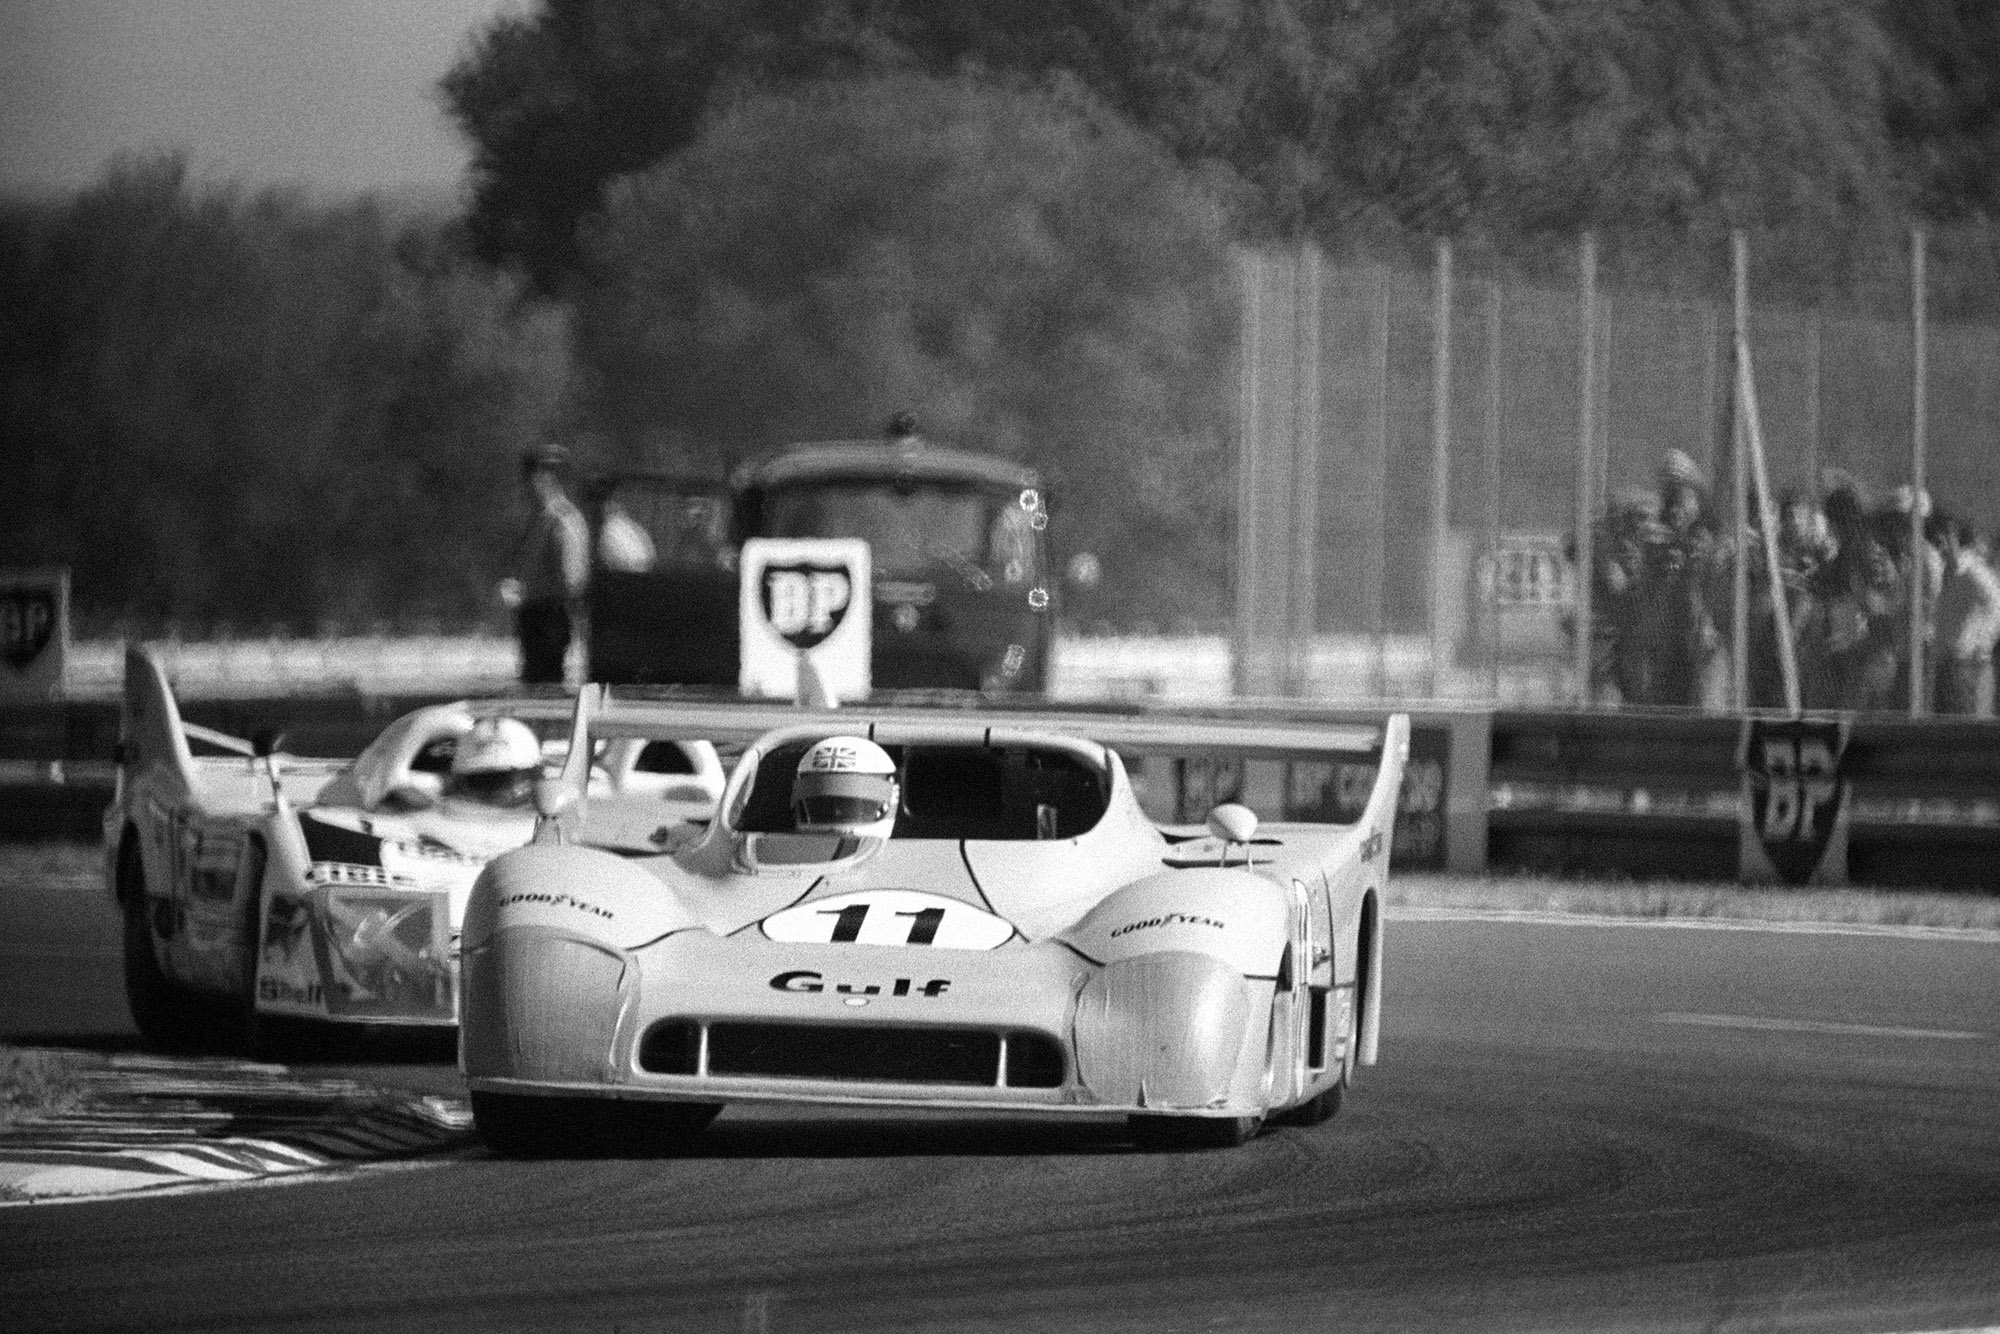 Derek Bell in a Mirage GR8 on his way to winnng the 1975 Le Mans 24 Hours